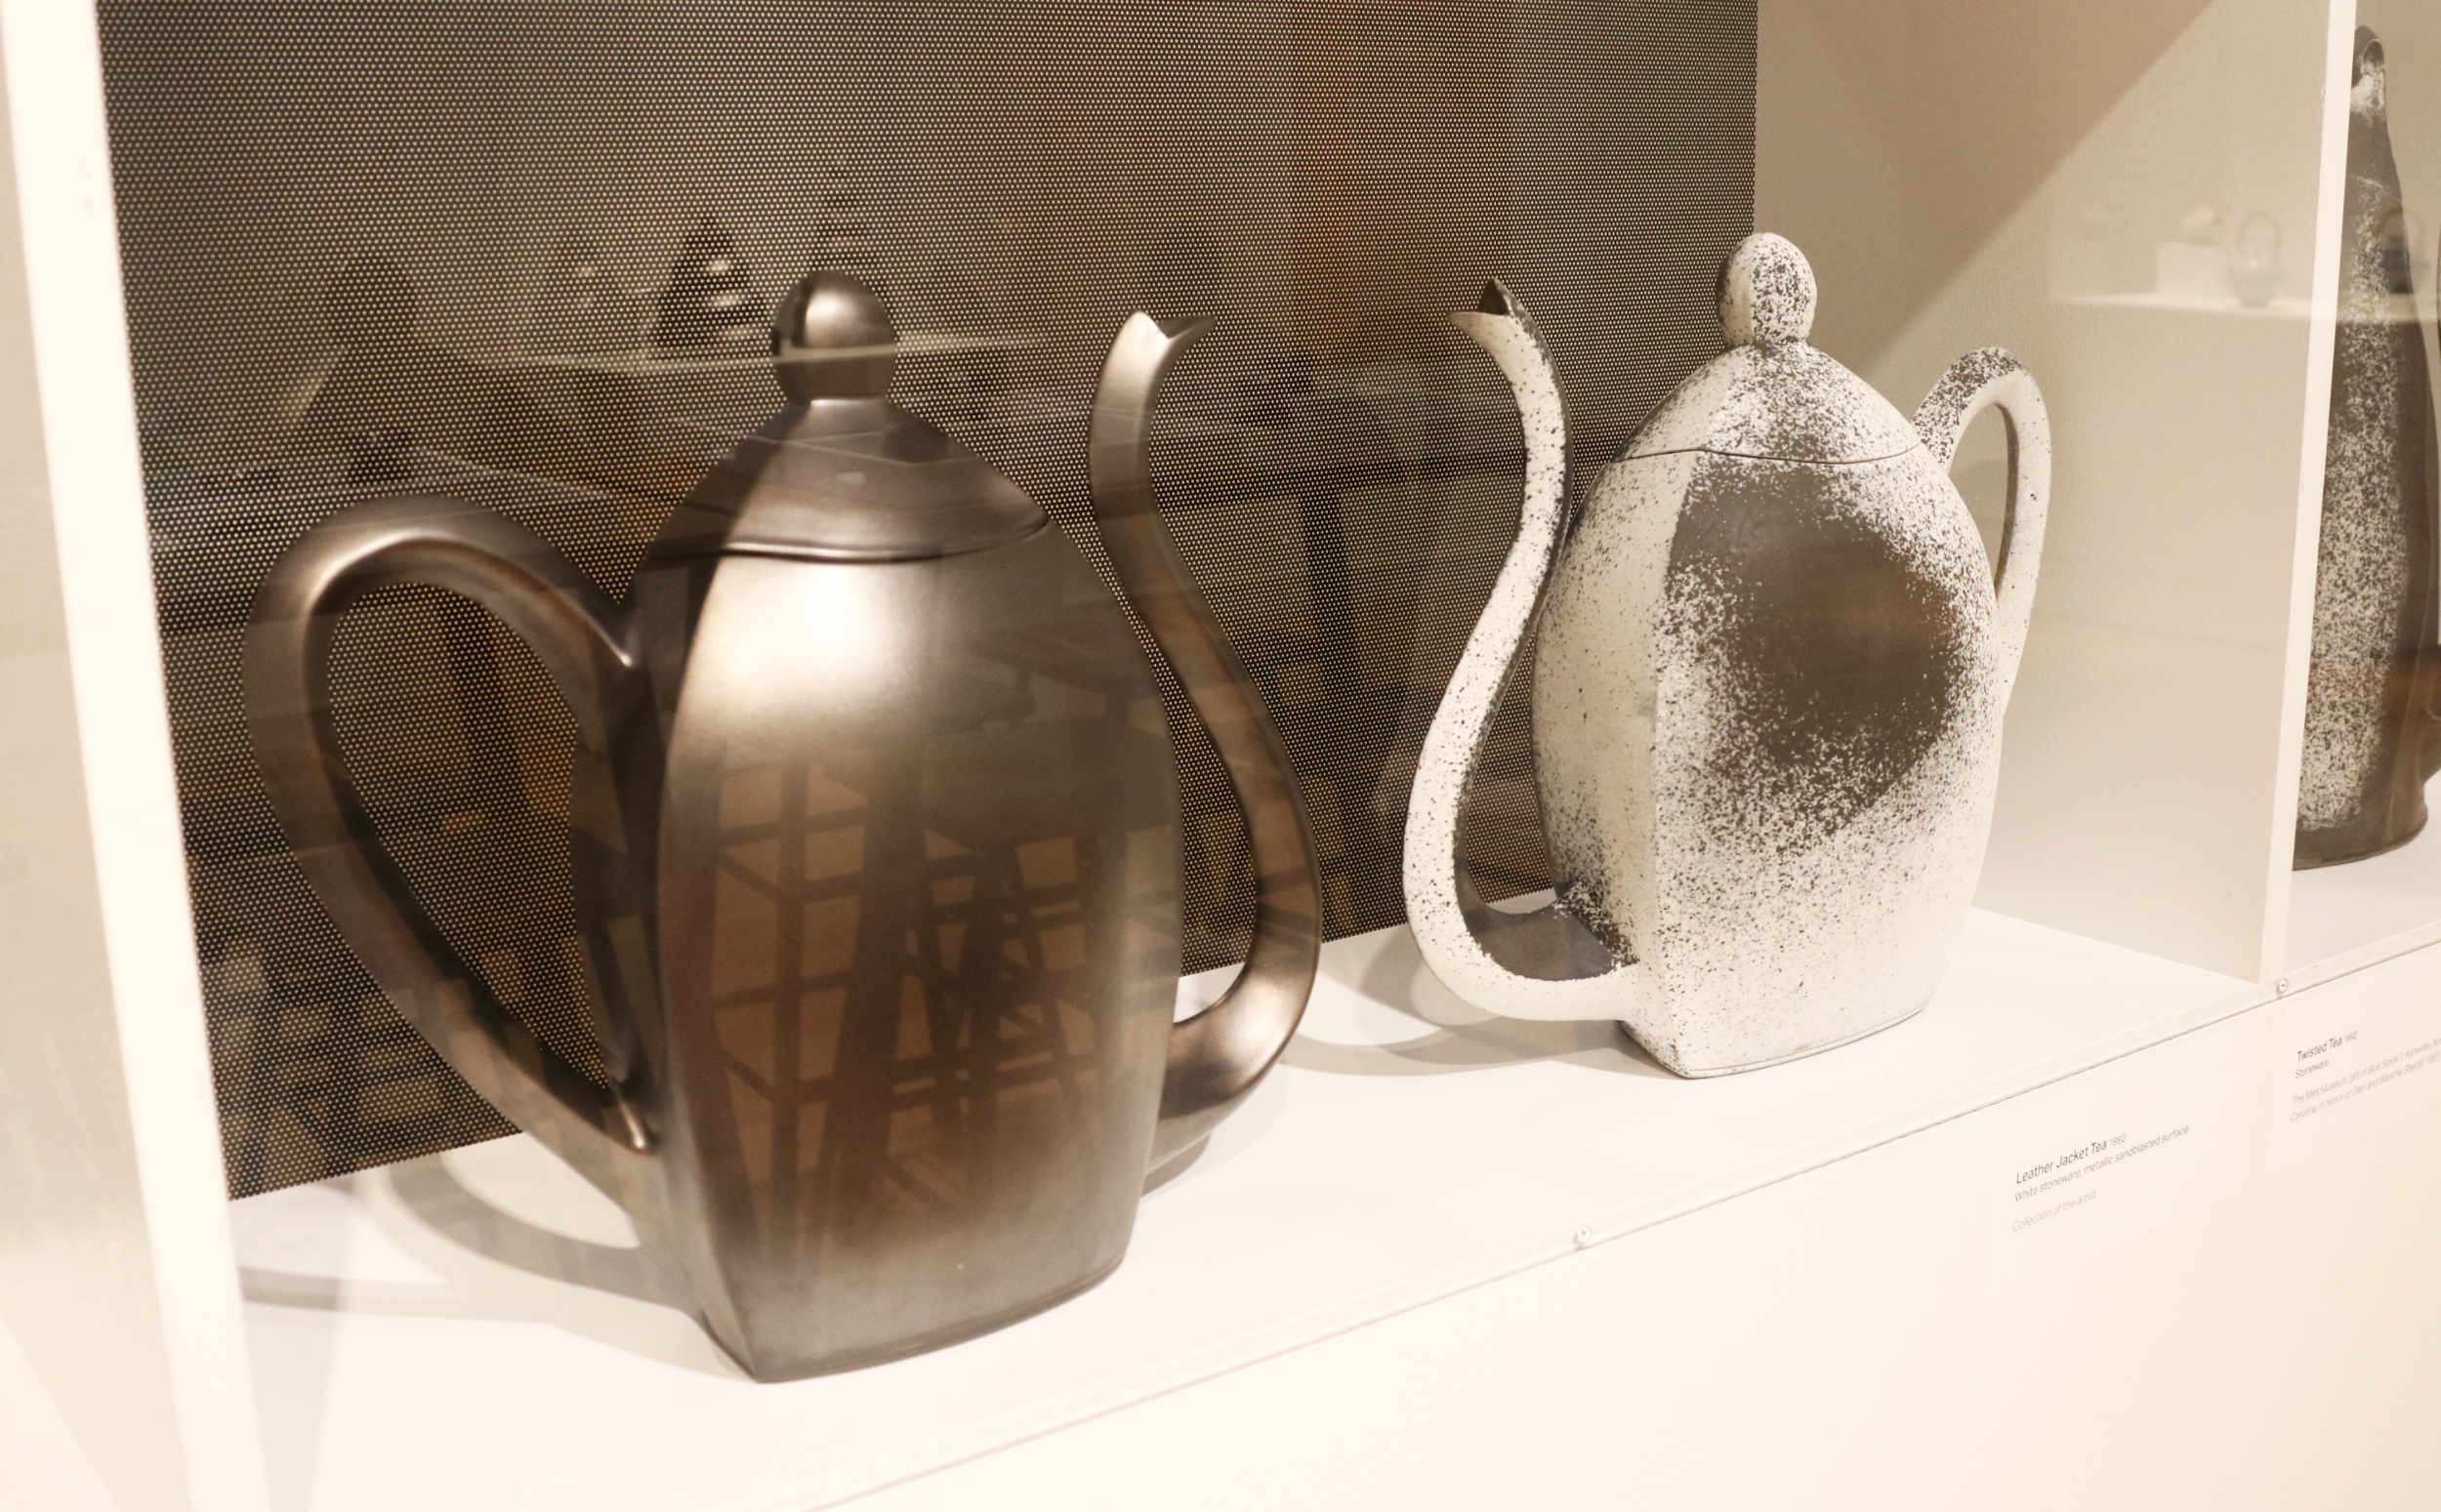 Michael Sherrill Two Sides of Tea, 1992. Ceramic.